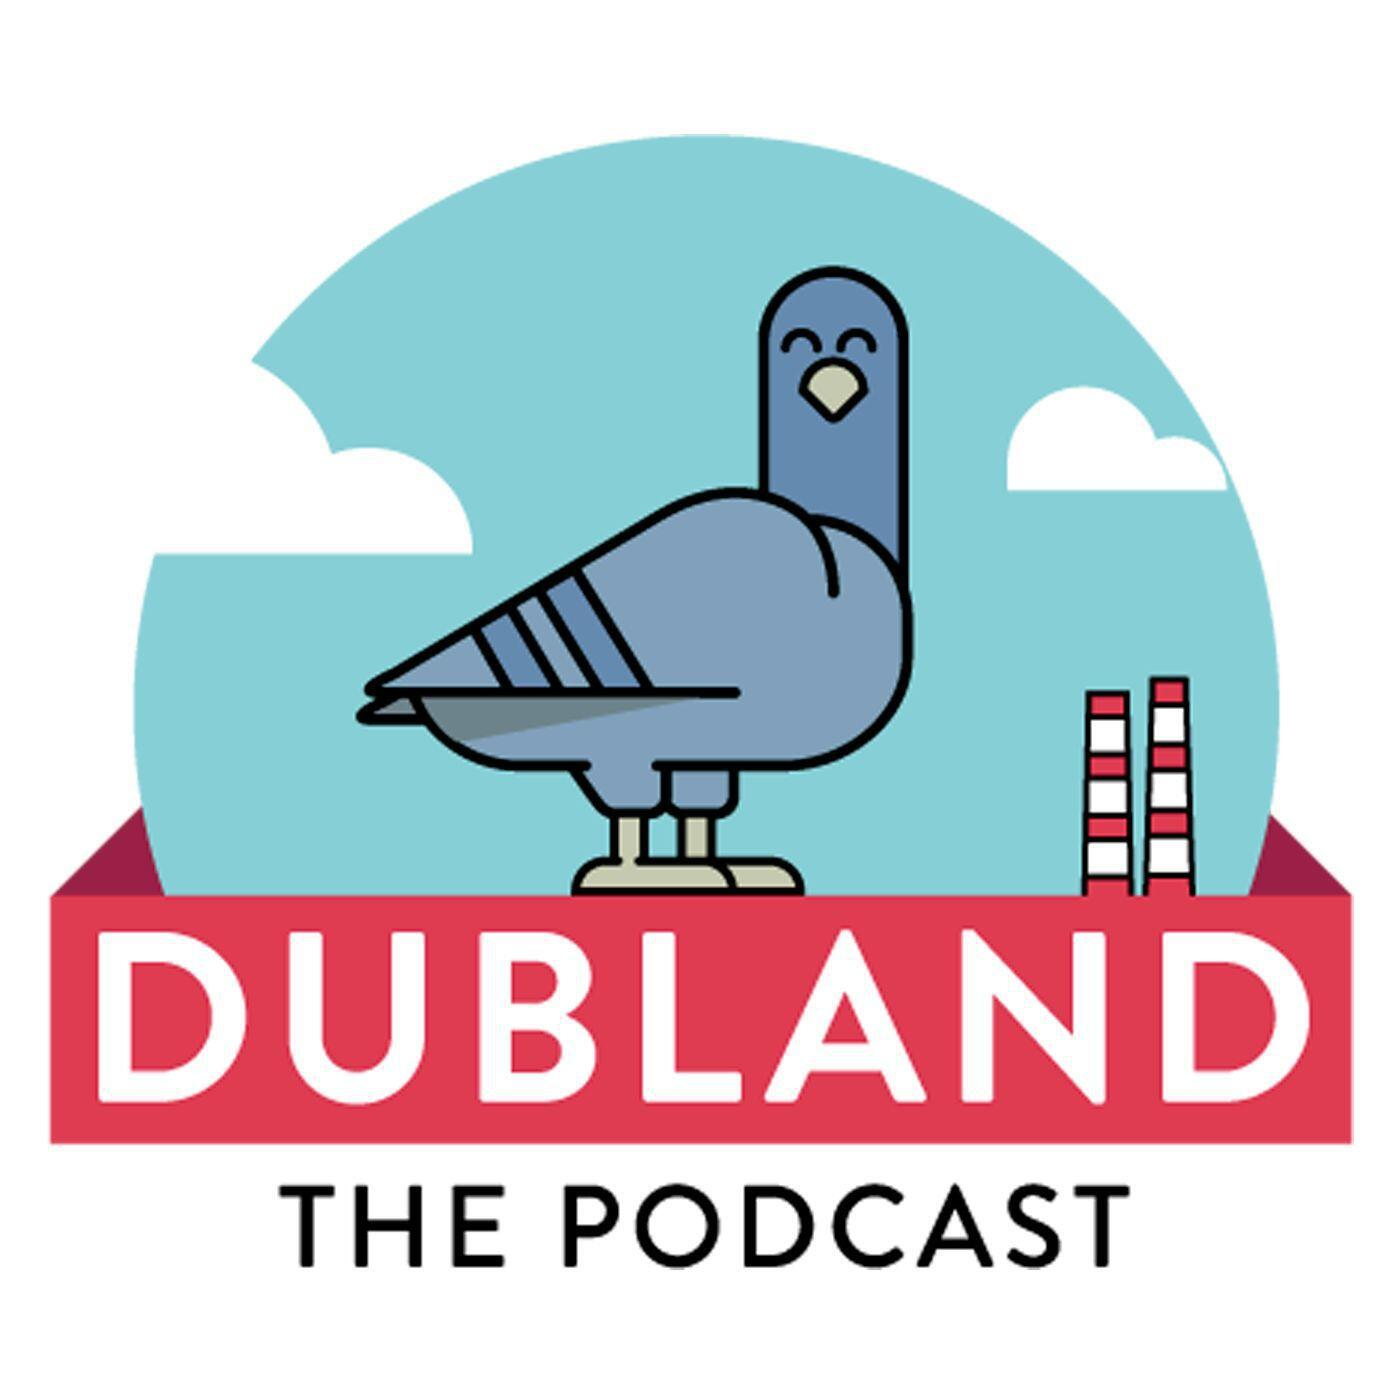 DUBLAND The Podcast Episode 1